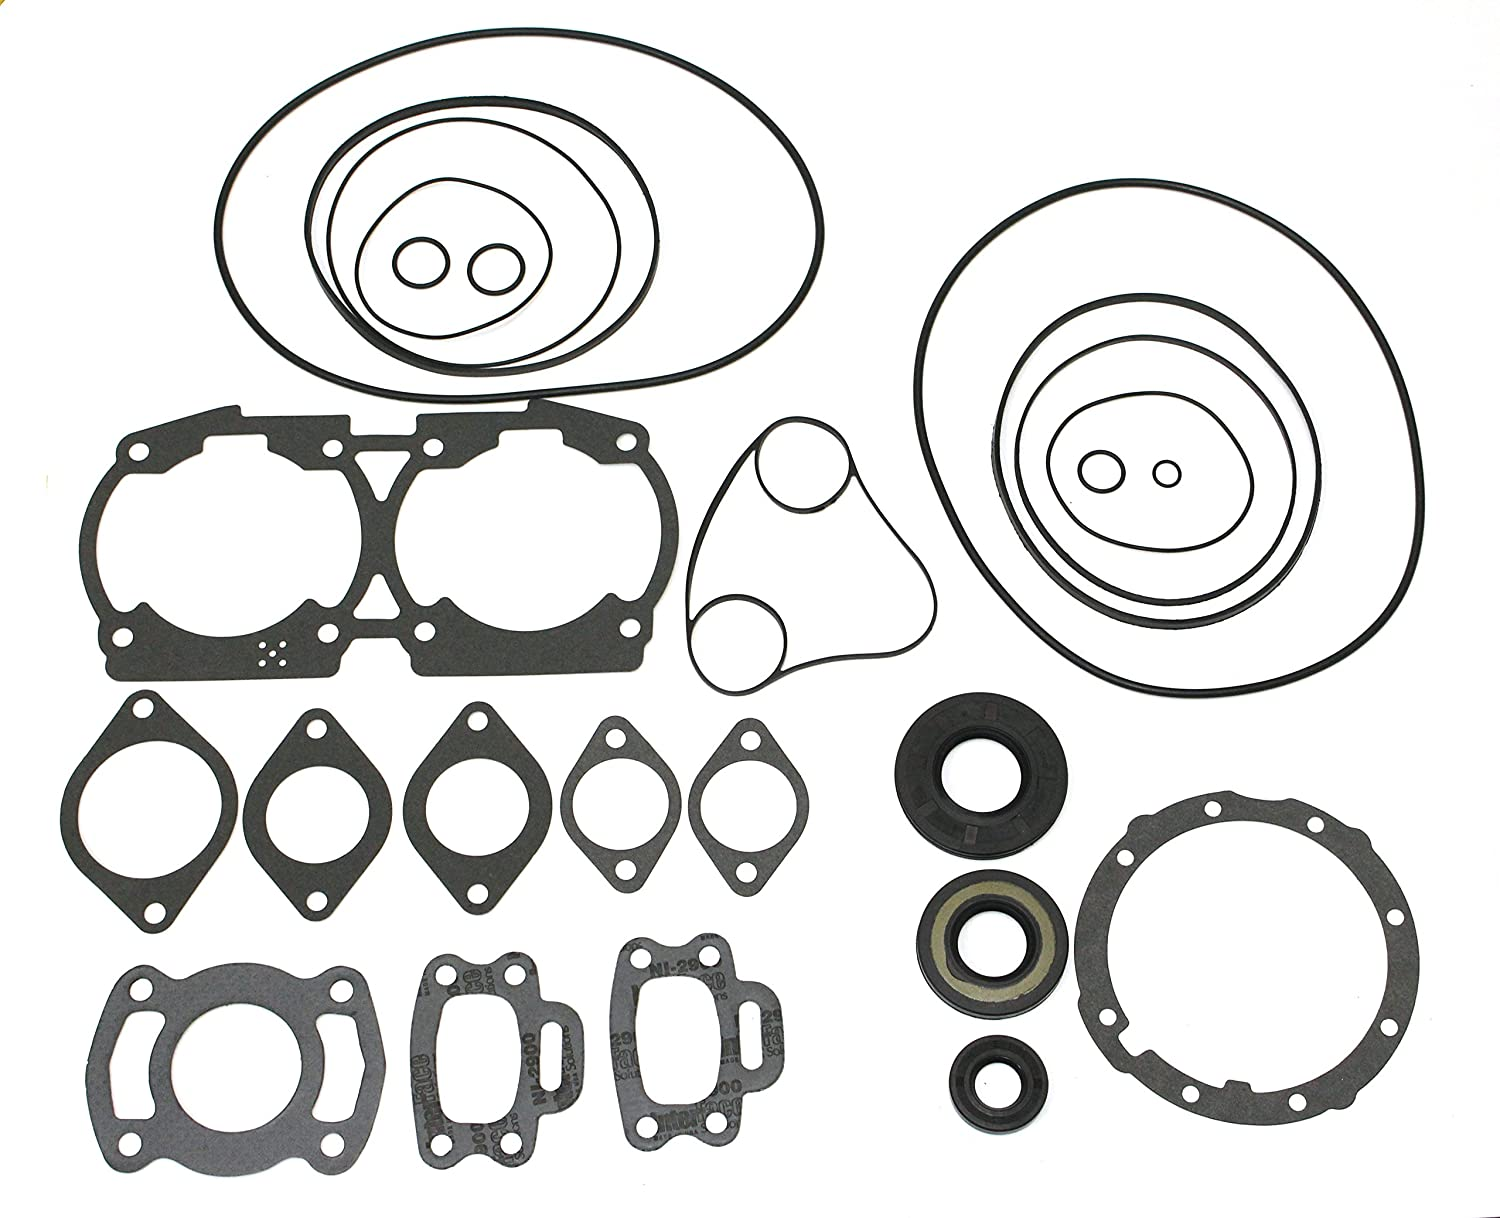 WSM PWC Top End Gasket Kit For Sea-Doo 720 SPX GTI HX GS GTS ALL 007-623-01